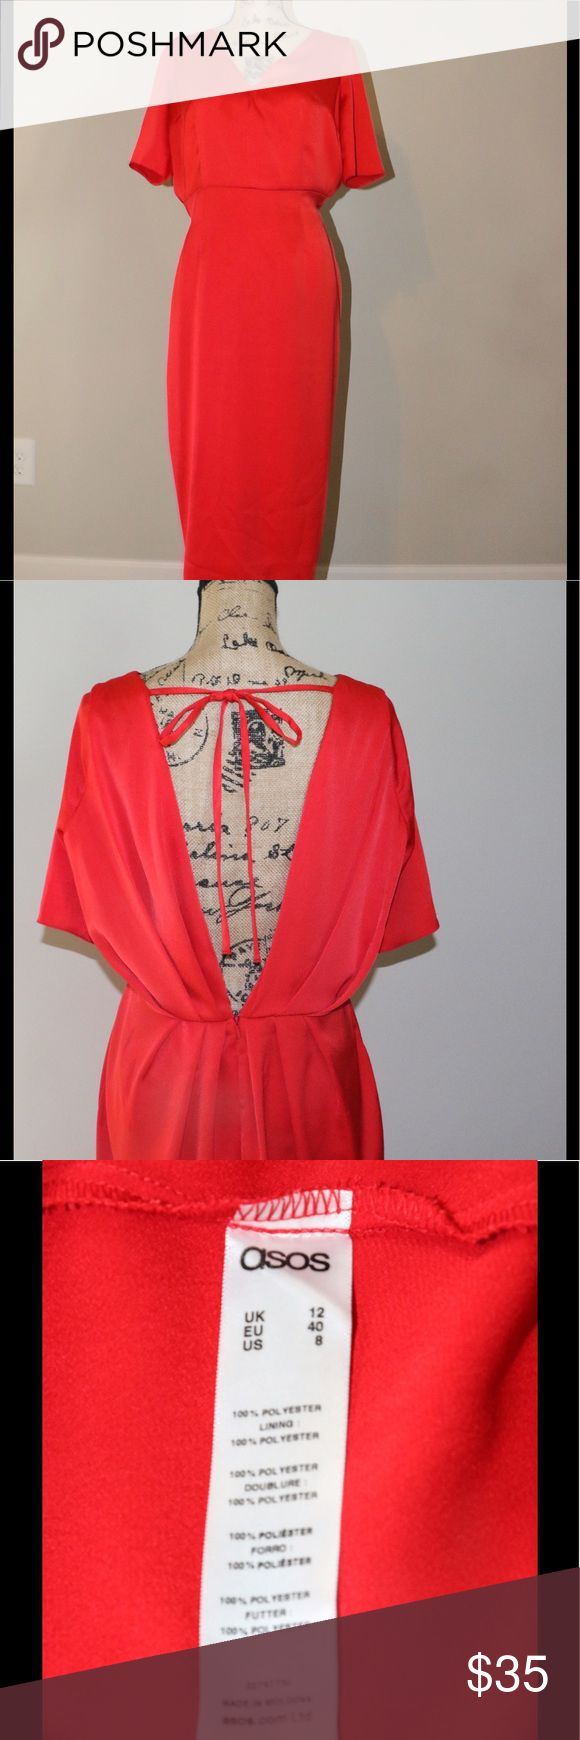 ASOS Red dress sz 8 ASOS red dress , deep V back , sz 8   100%  polyester excellent condition ASOS Dresses